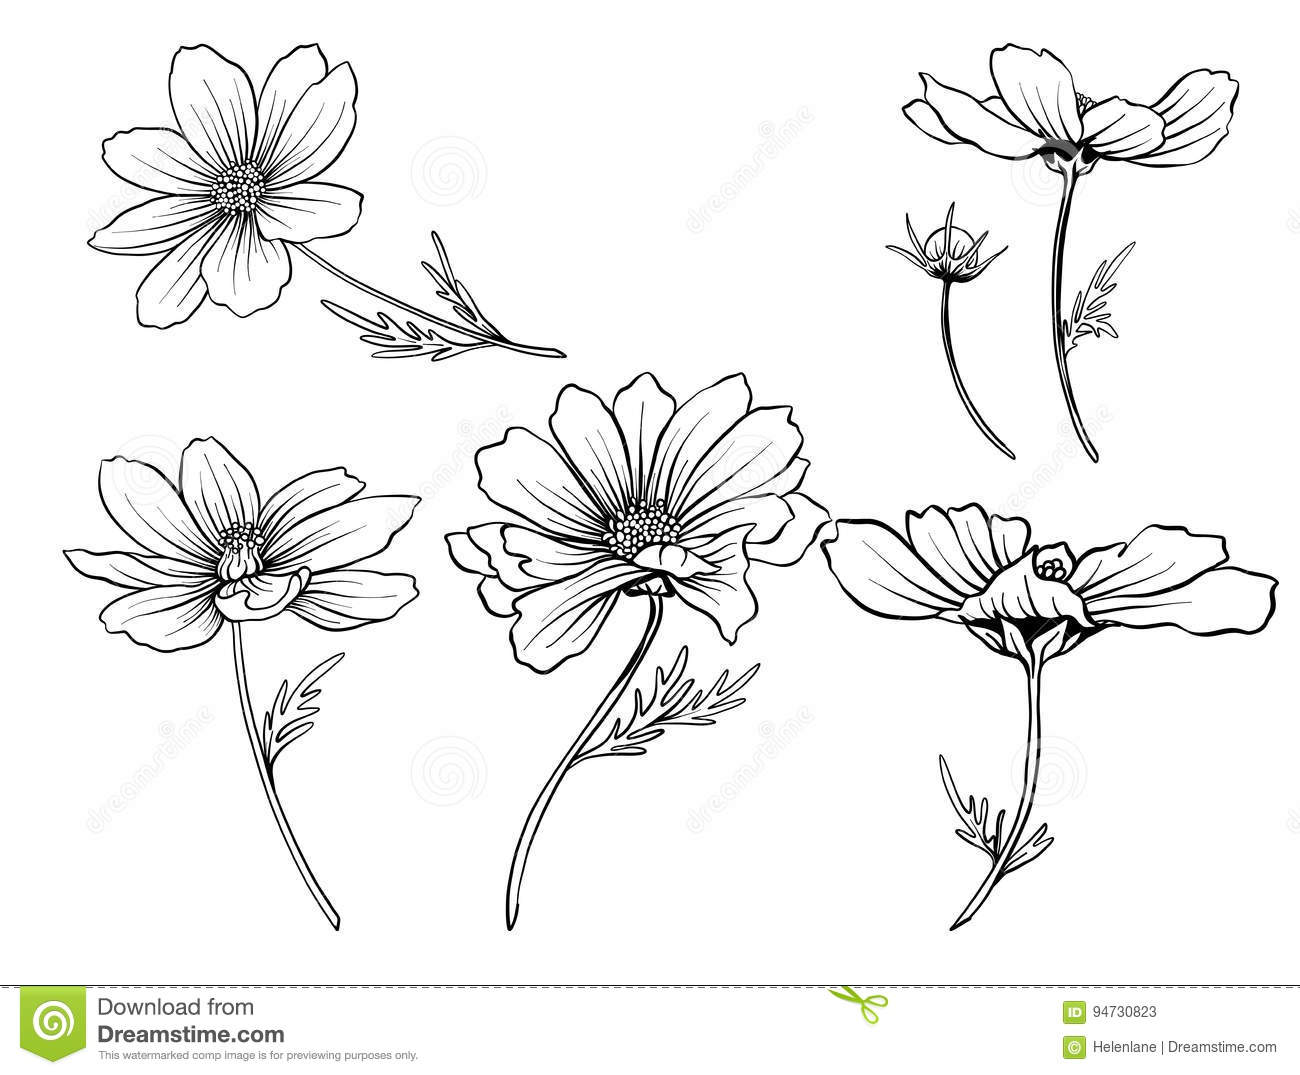 Line Drawing Flower Vector : Cosmos flower drawing pixshark images